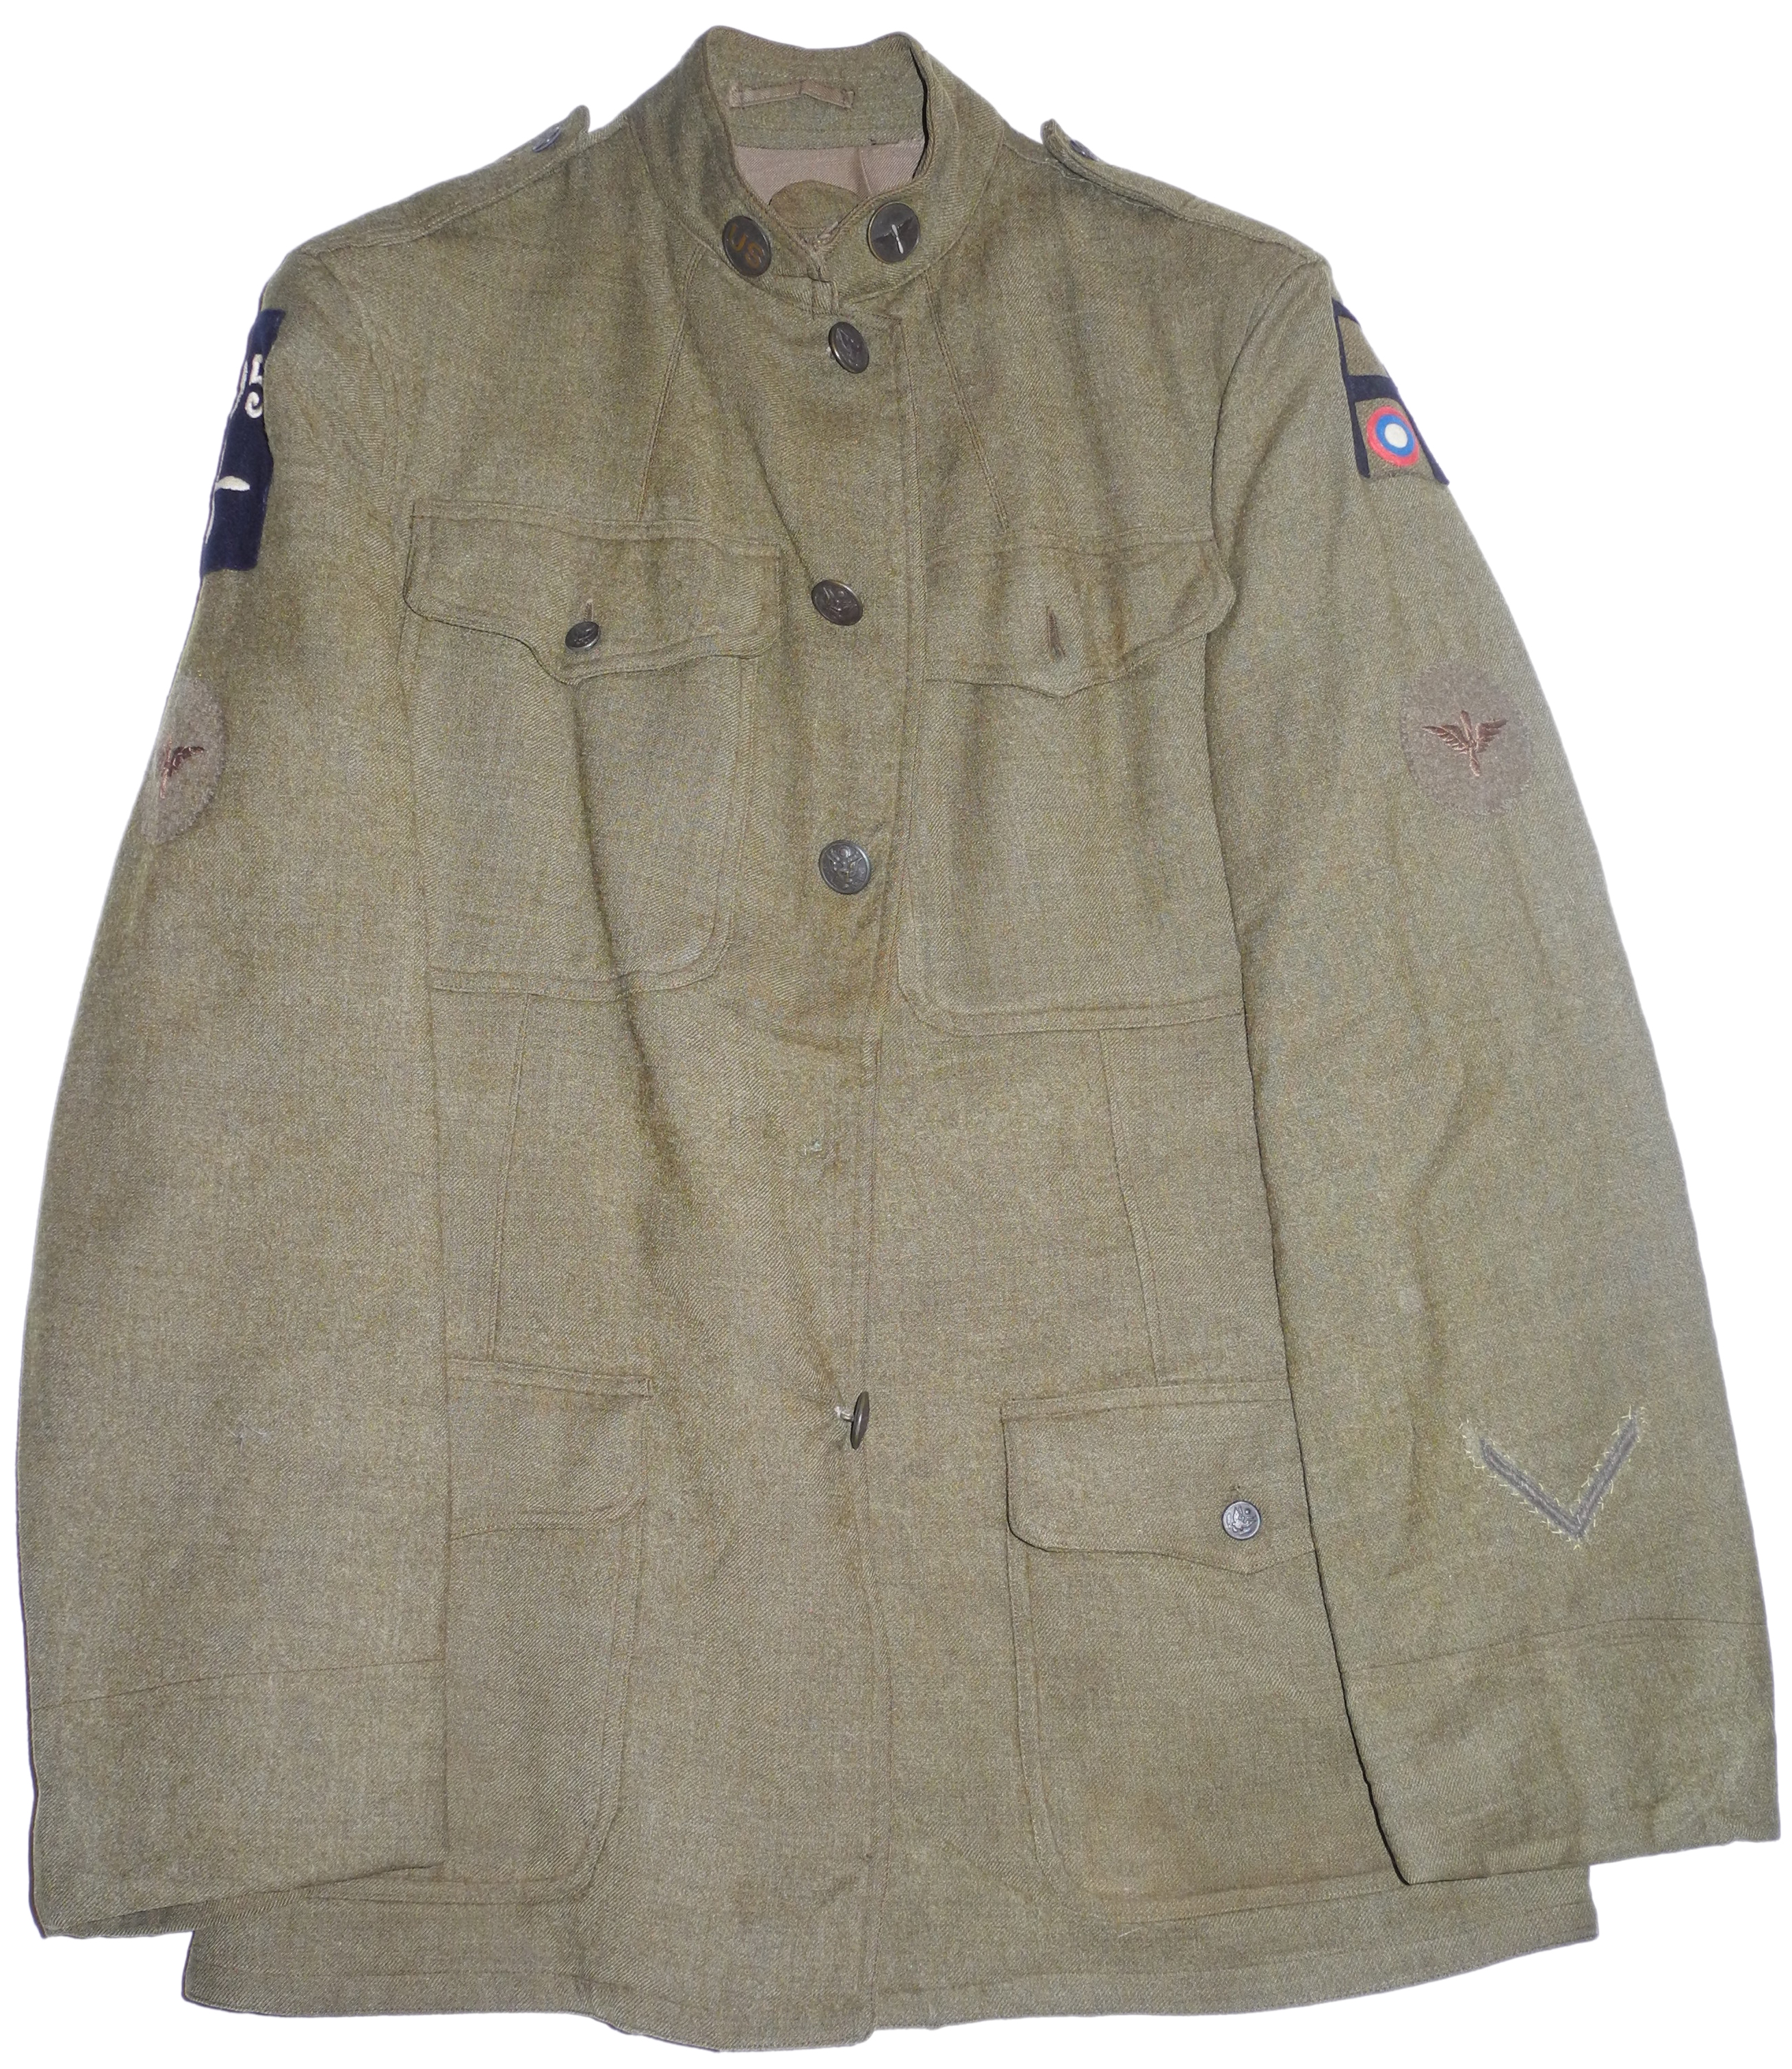 WWI US Air Service sergeant's tunic